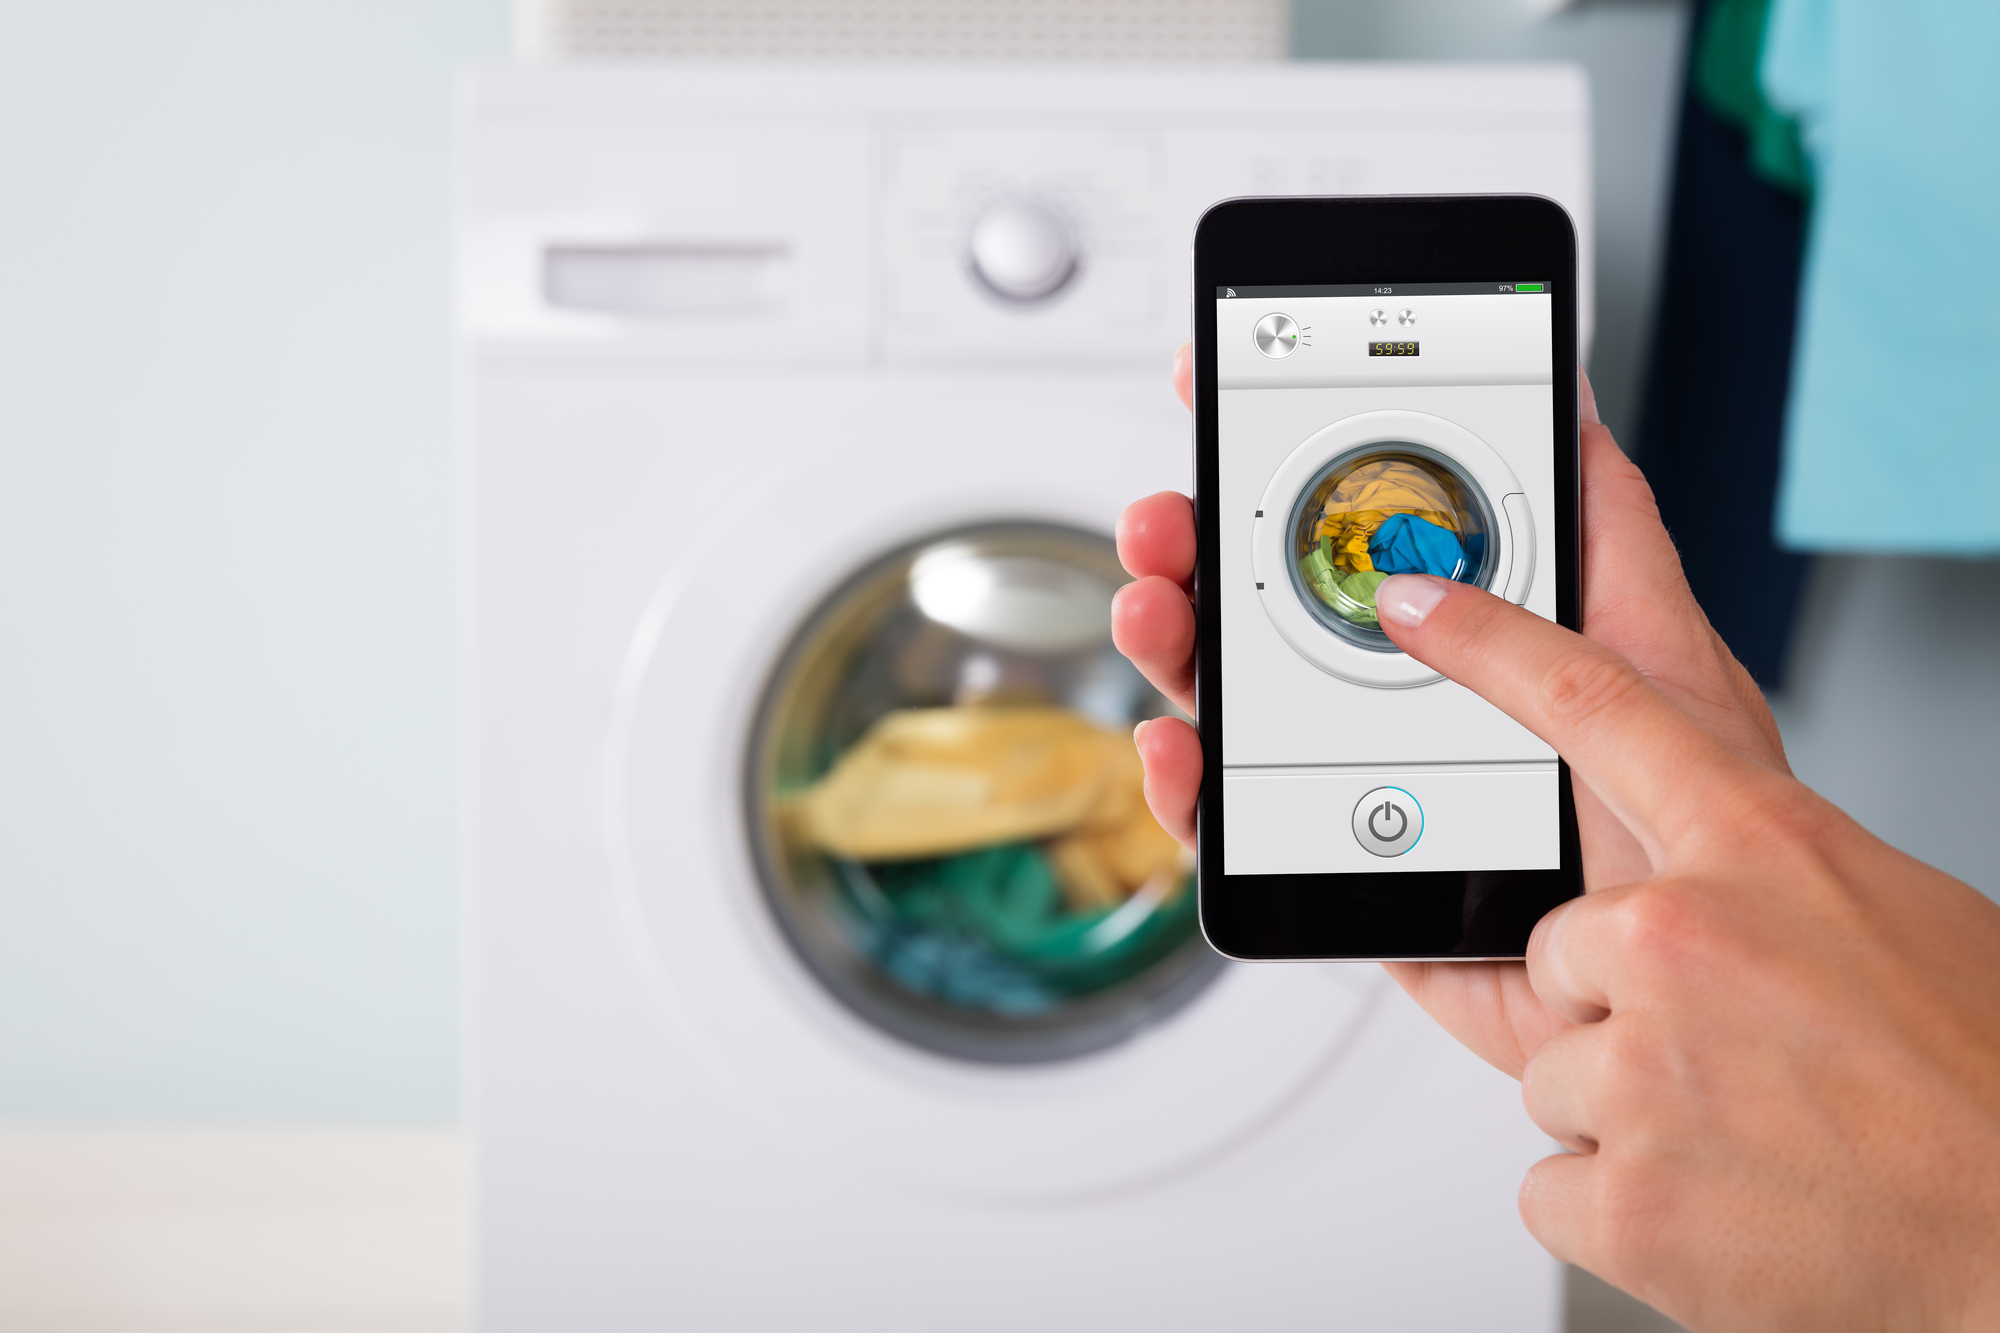 Person Using Laundry Room Mobile Apps On Smartphone To Control Washing Machine